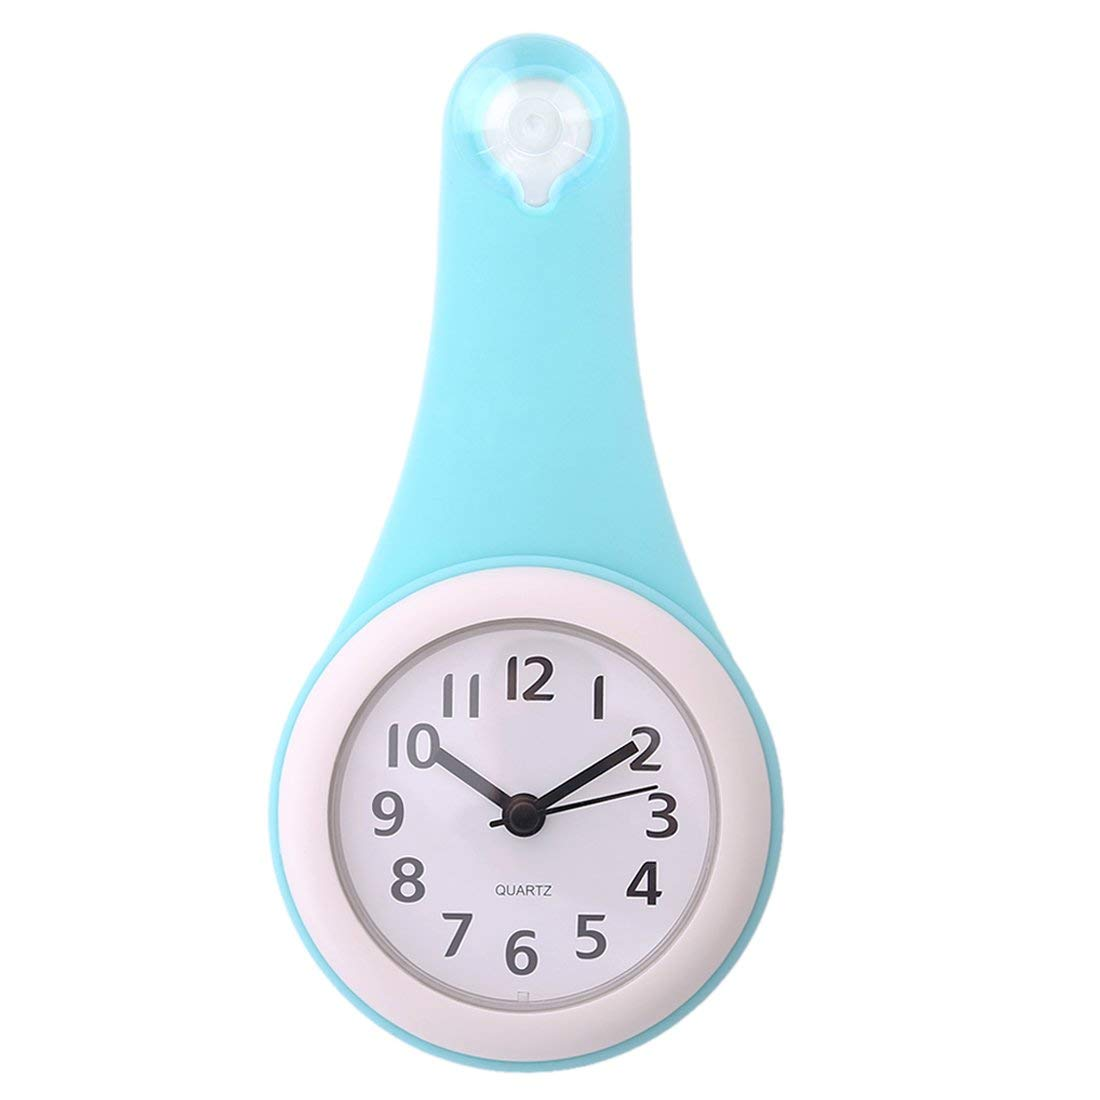 ZSJZHB Modern Minimalist Bathroom Clock, Waterproof and Quiet Home Kitchen with Watch Suction Cup, Waterproof Small Digital Wall Clock Mute Home Decoration by ZSJZHB